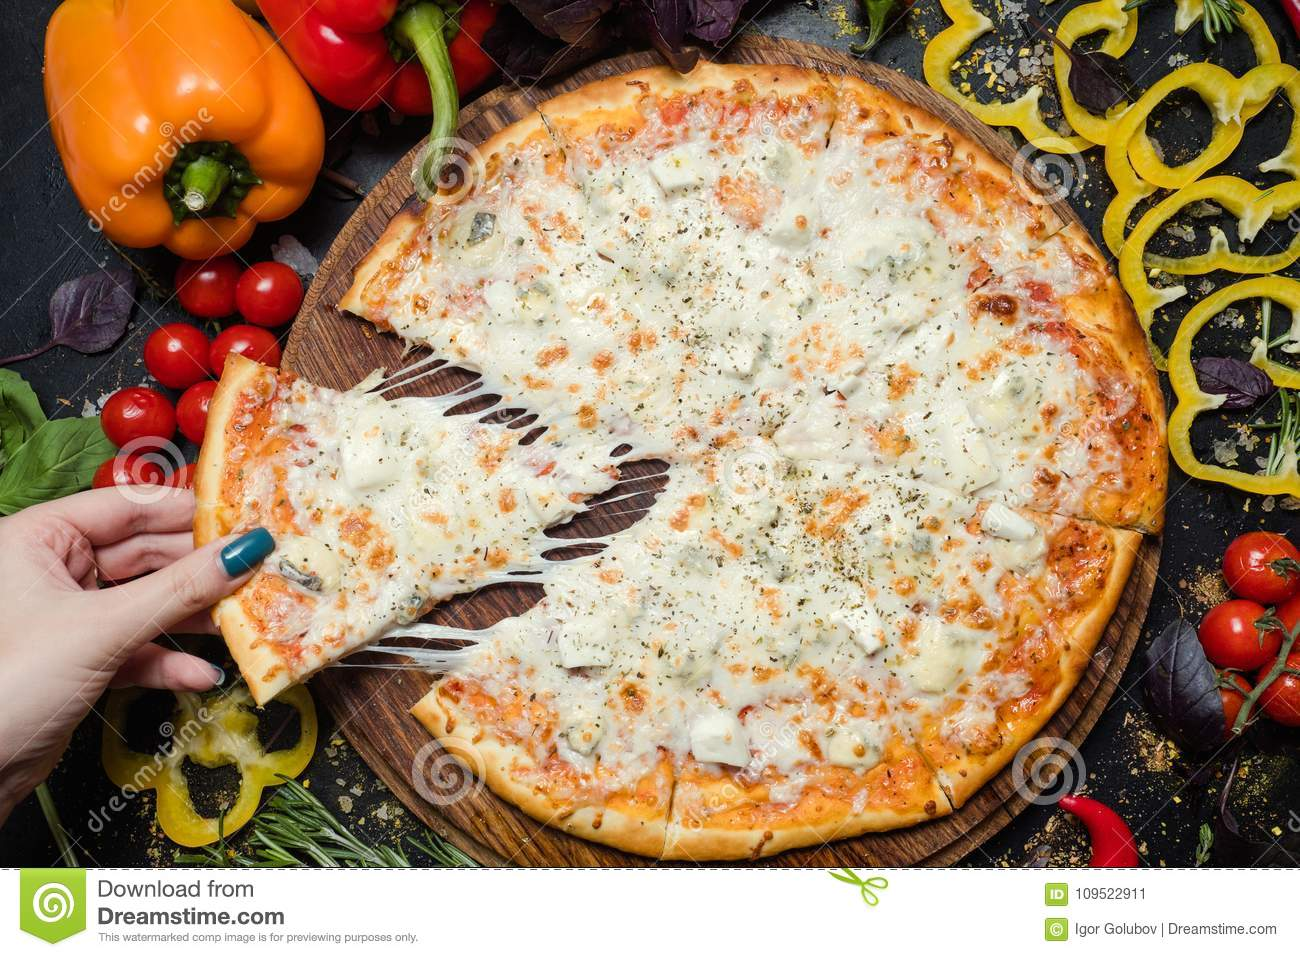 National italian meal pizza slice melted cheese